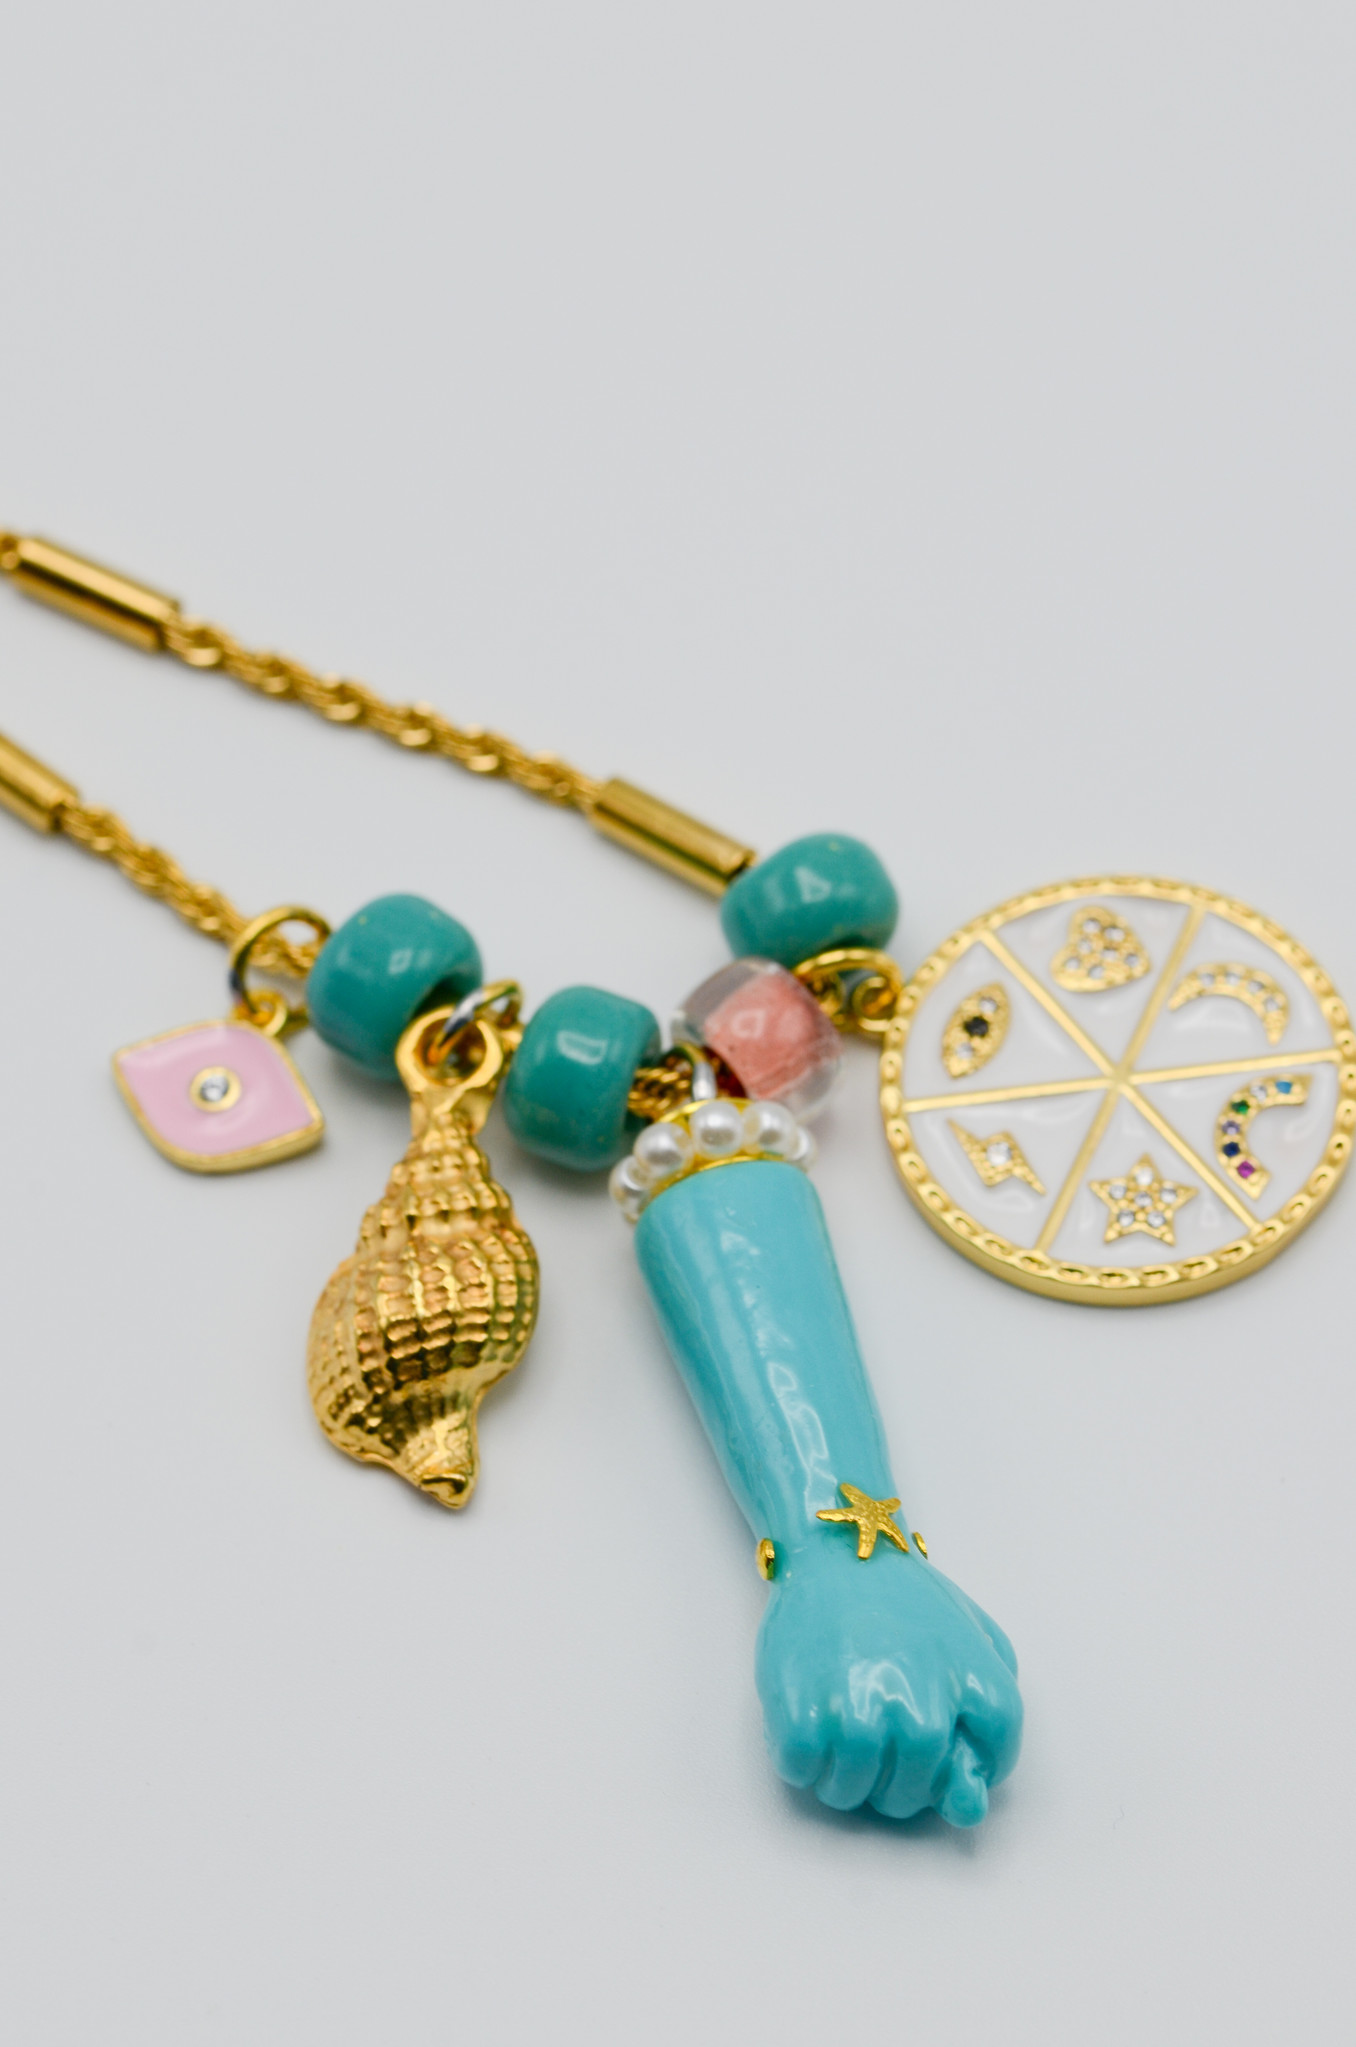 FIG HAND PENDANT IN TURQUOISE-3